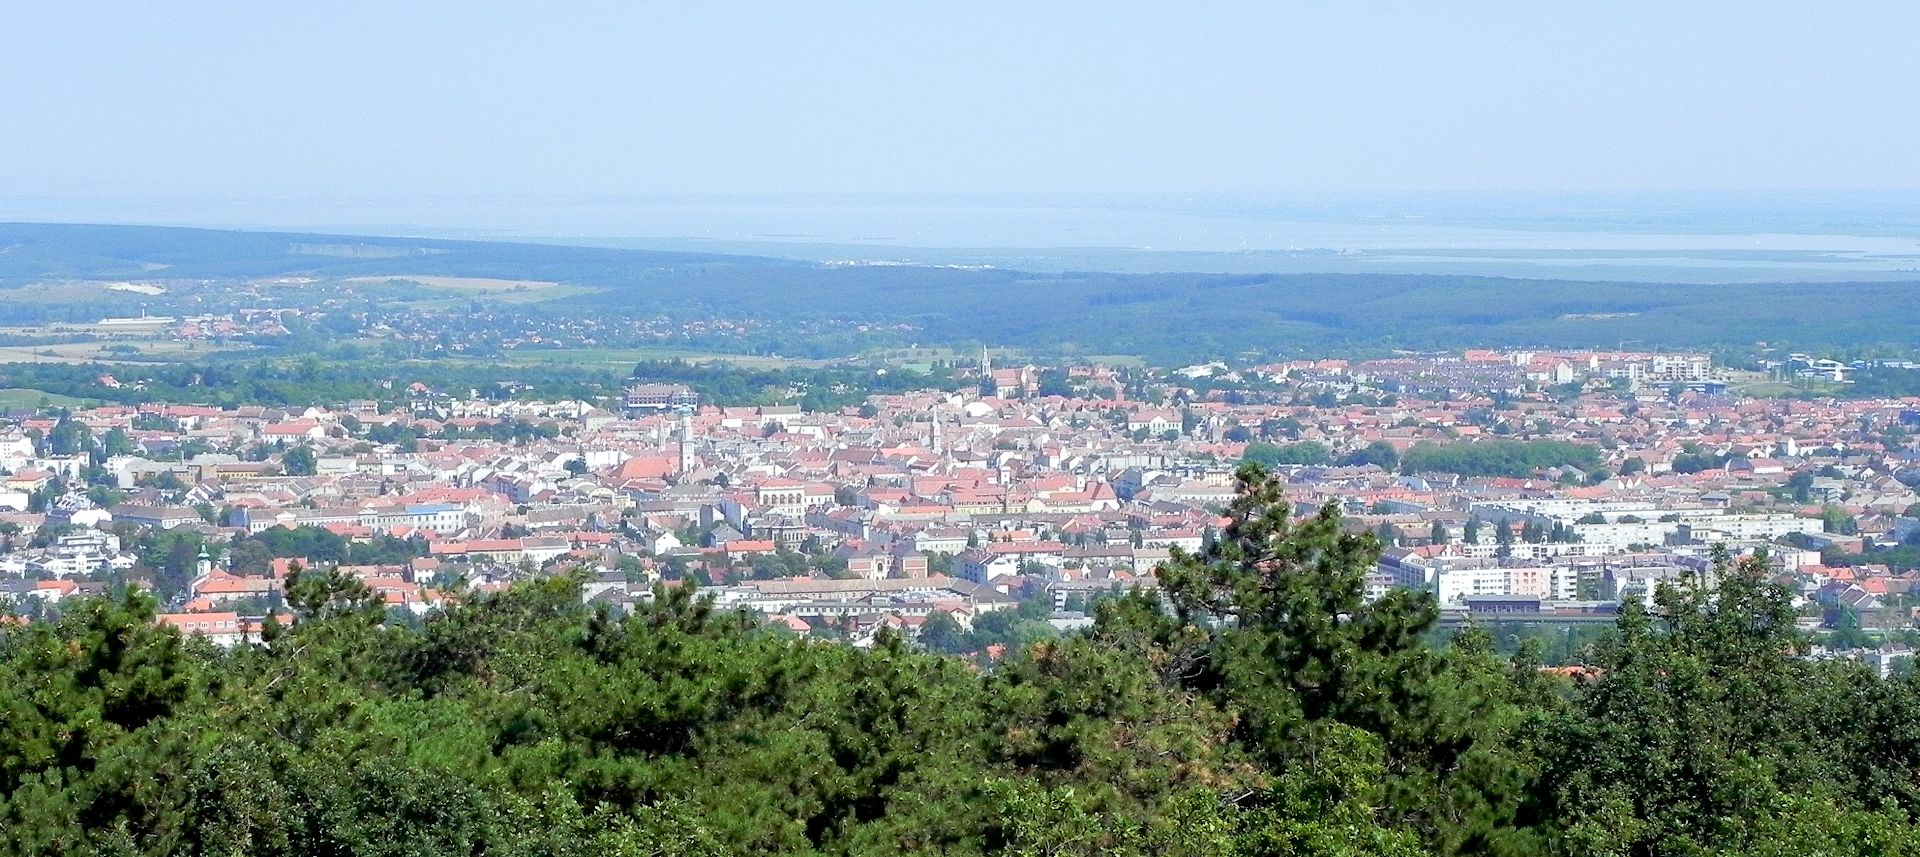 Property For Sale In The County Of Gyor Moson Sopron Hungary